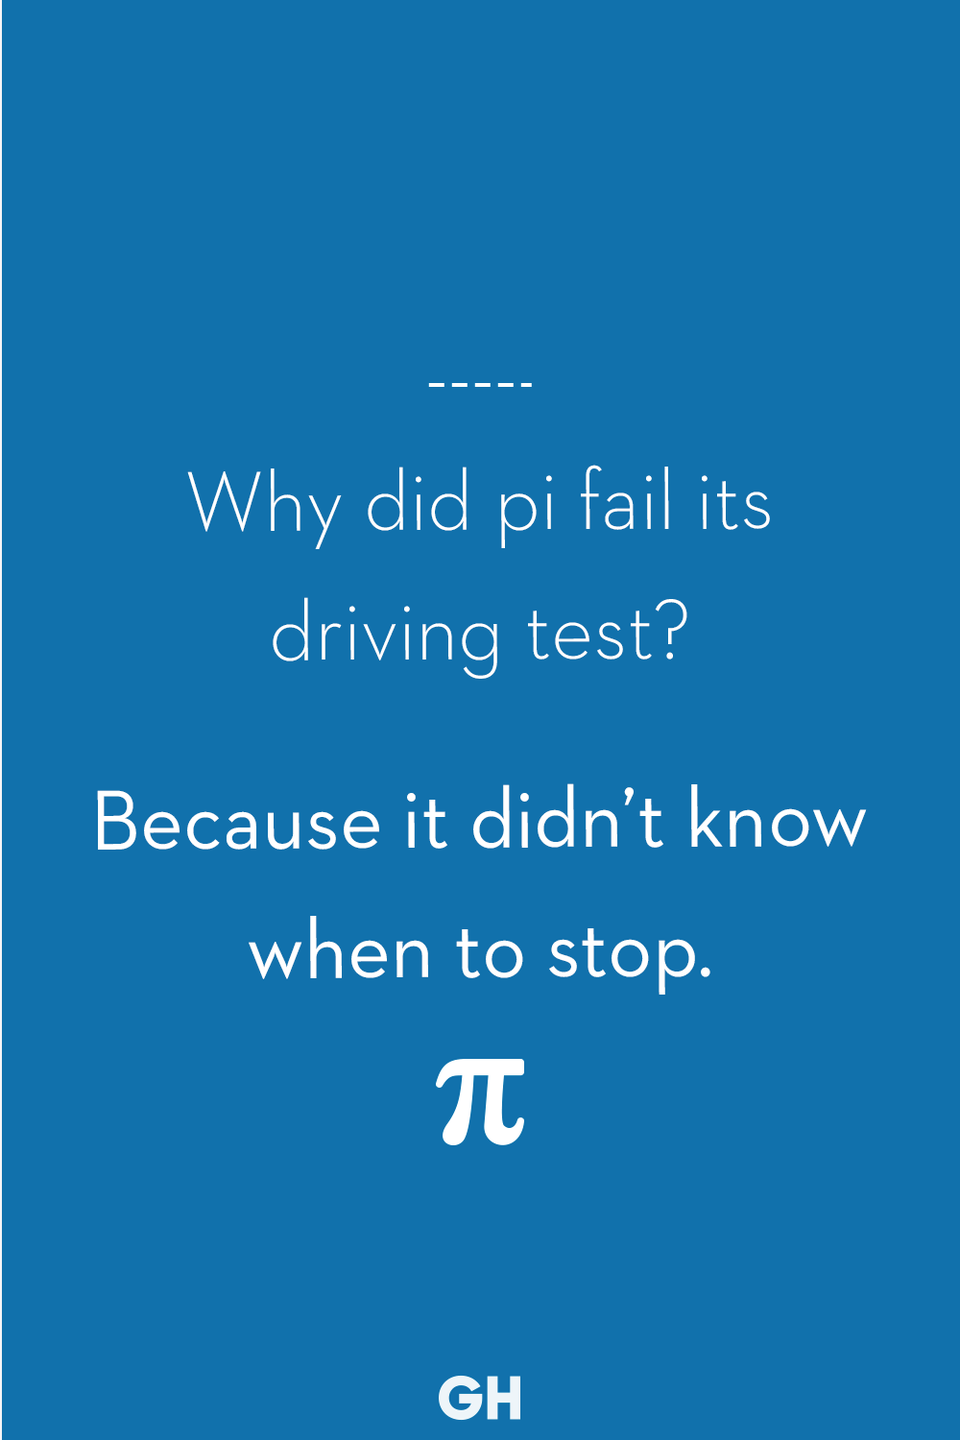 <p>Because it didn't know when to stop.</p>